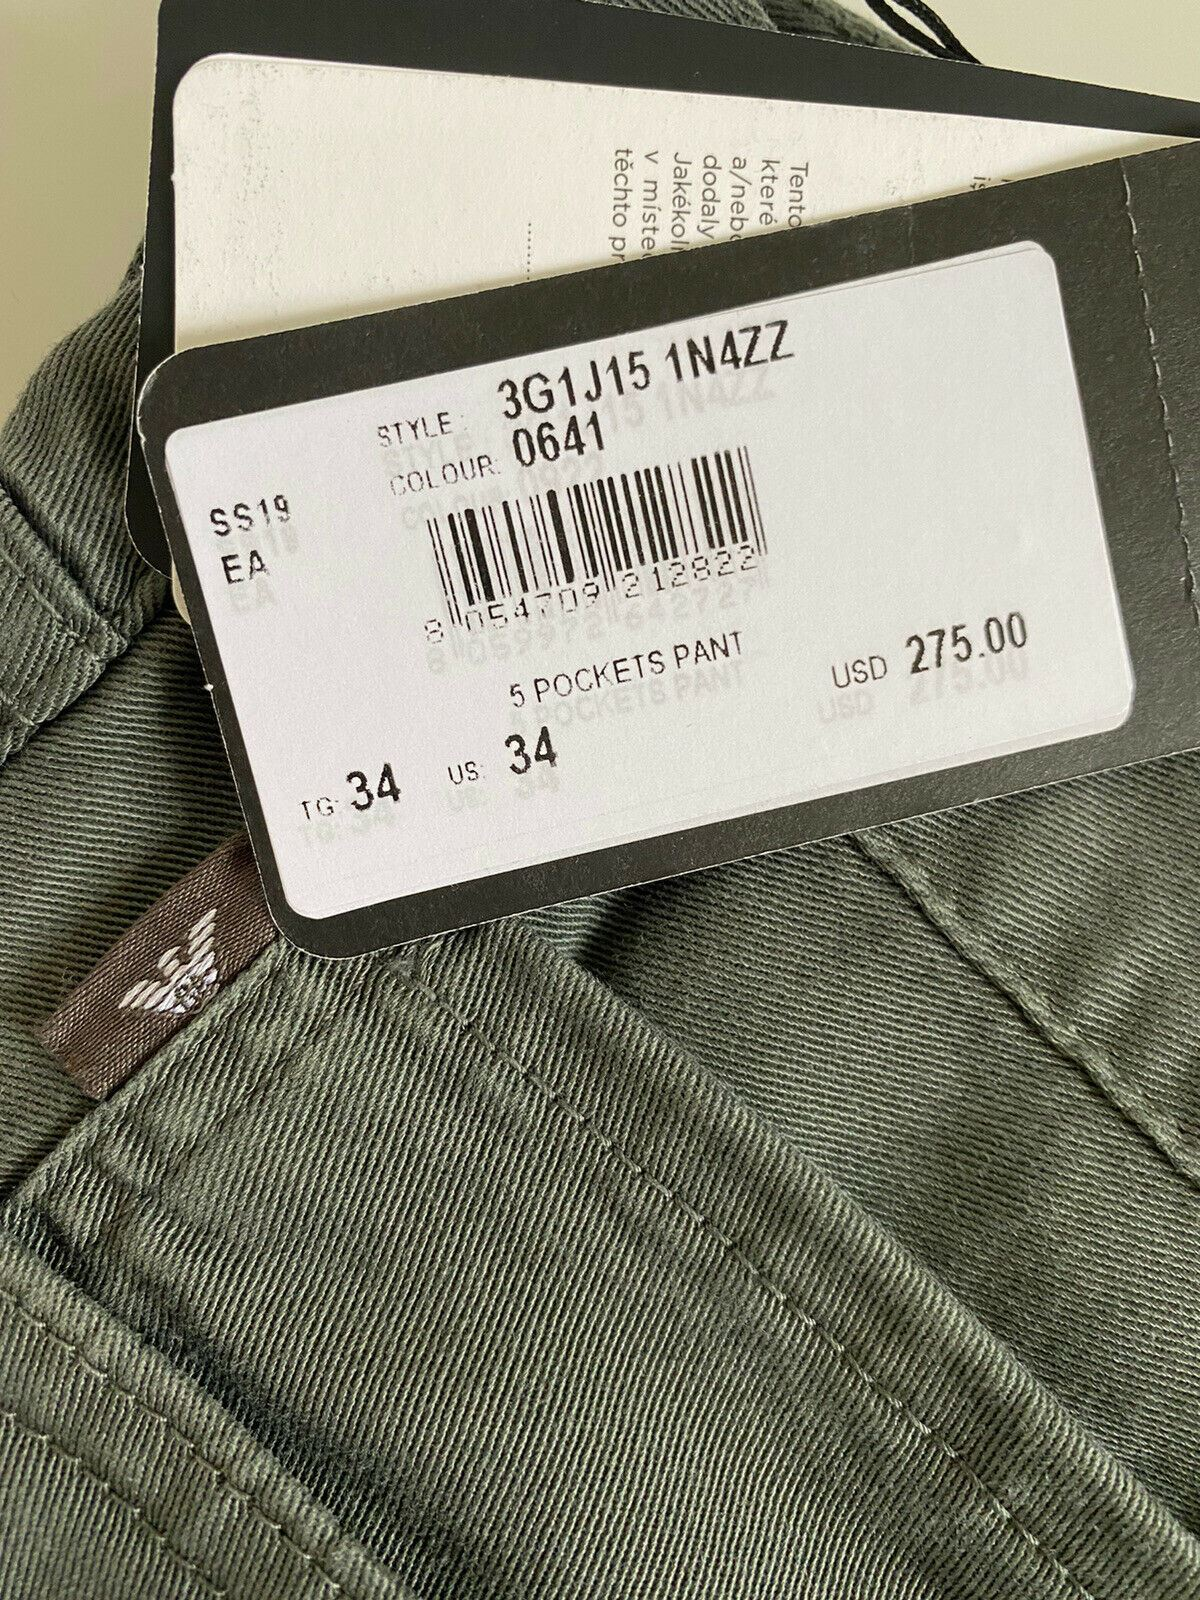 NWT $275 Emporio Armani J15 Regular Fit Green Jeans 3G1J15 34 US